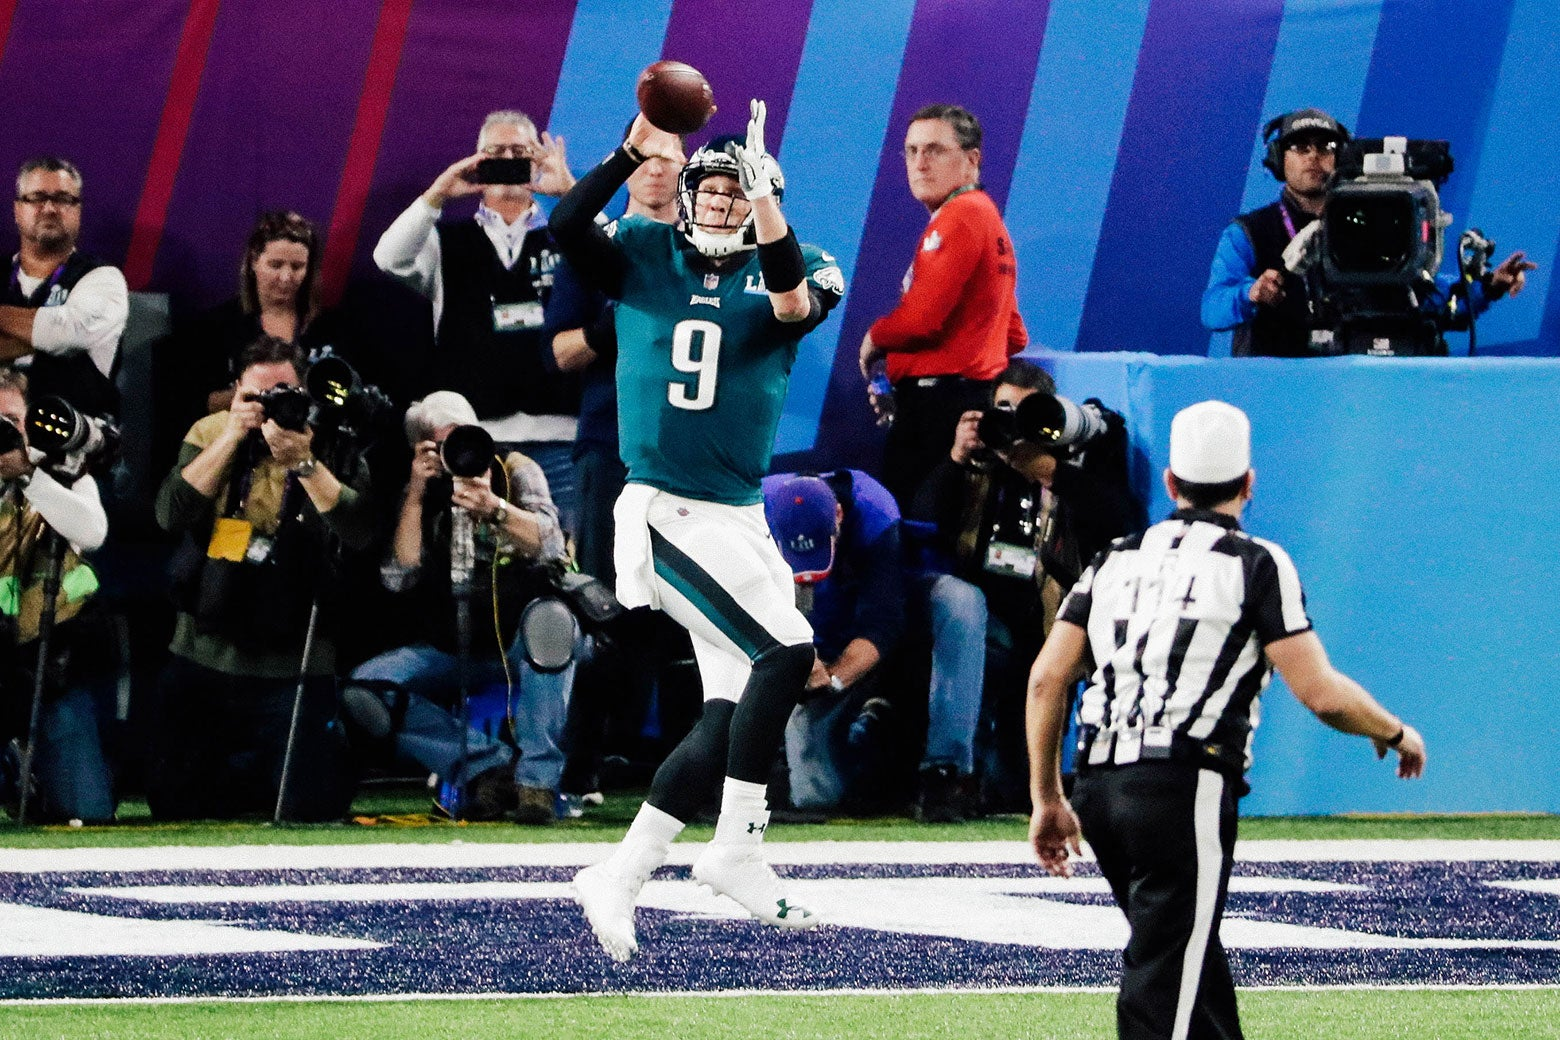 Nick Foles of the Philadelphia Eagles catches a second-quarter touchdown reception against the New England Patriots in Super Bowl LII at U.S. Bank Stadium on Sunday in Minneapolis.